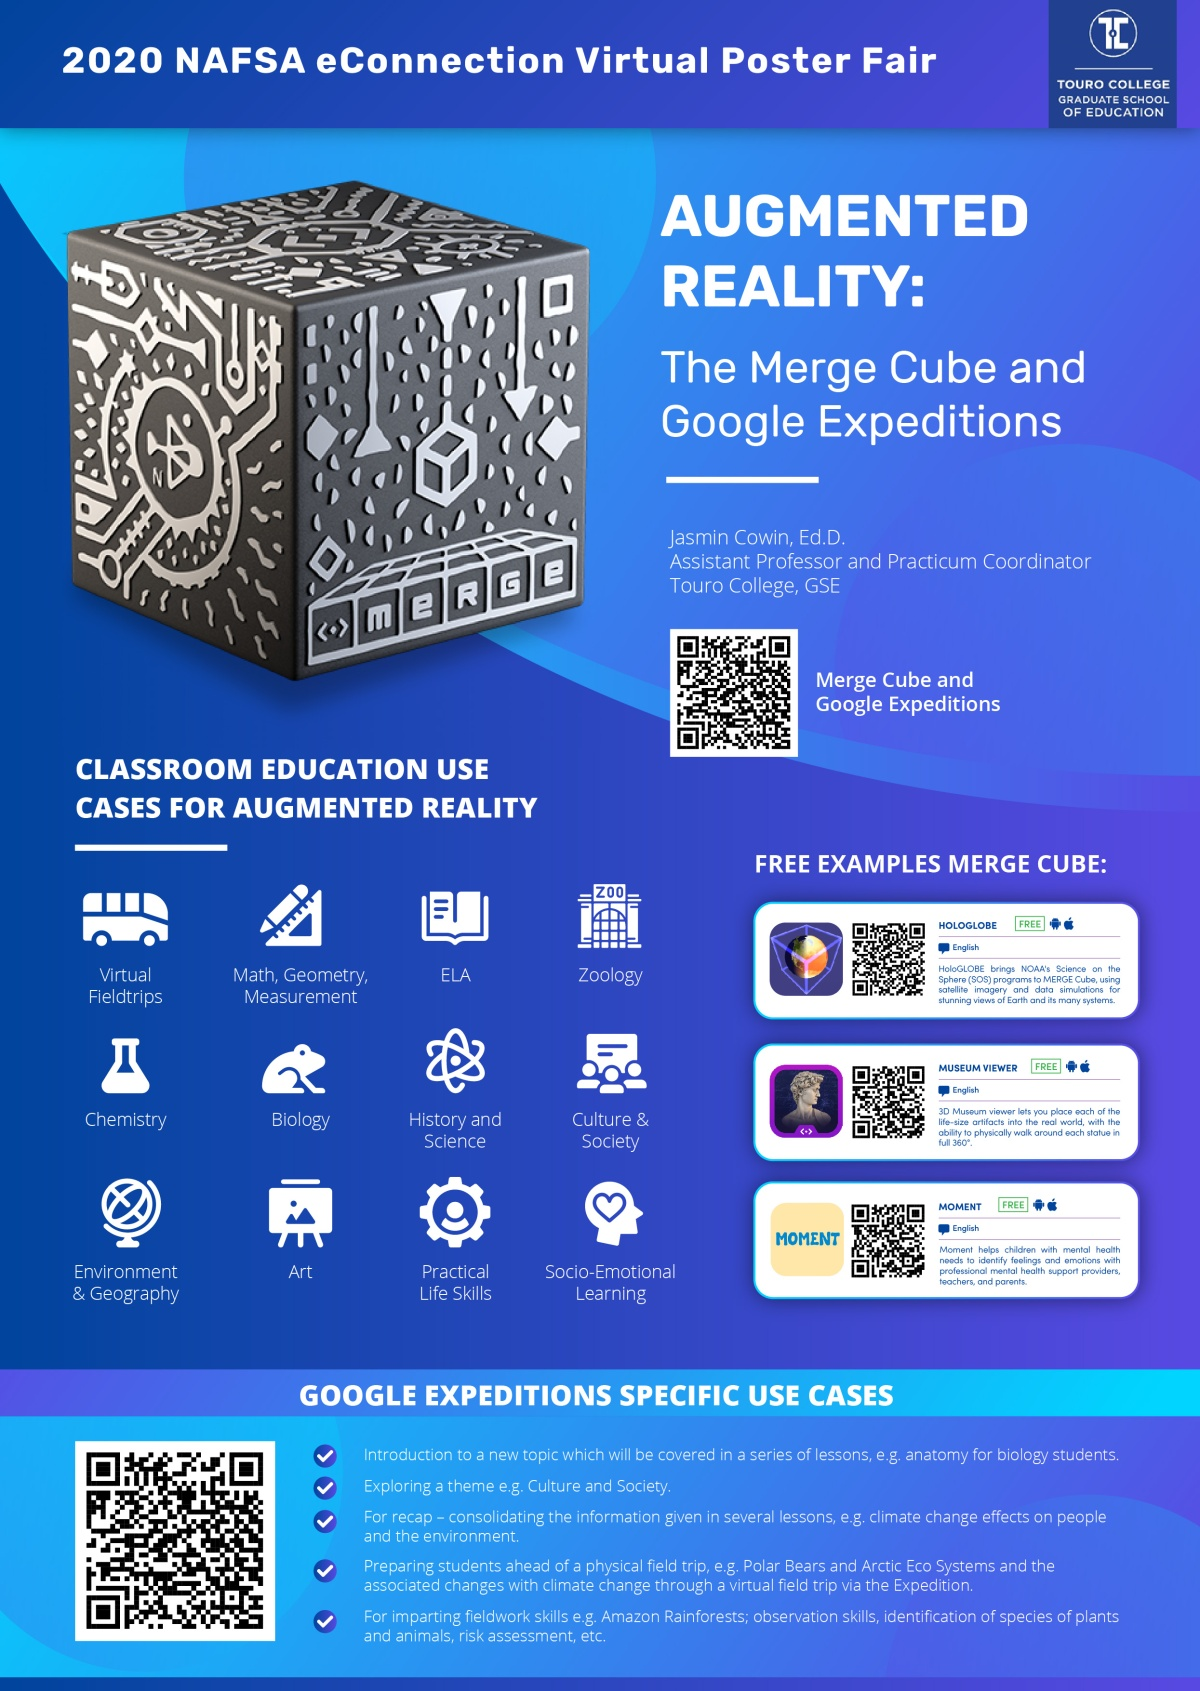 Dr. Cowin's Merge Cube and Google Expedition Poster for the Virtual Poster Fair at the 2020 NAFSAConference